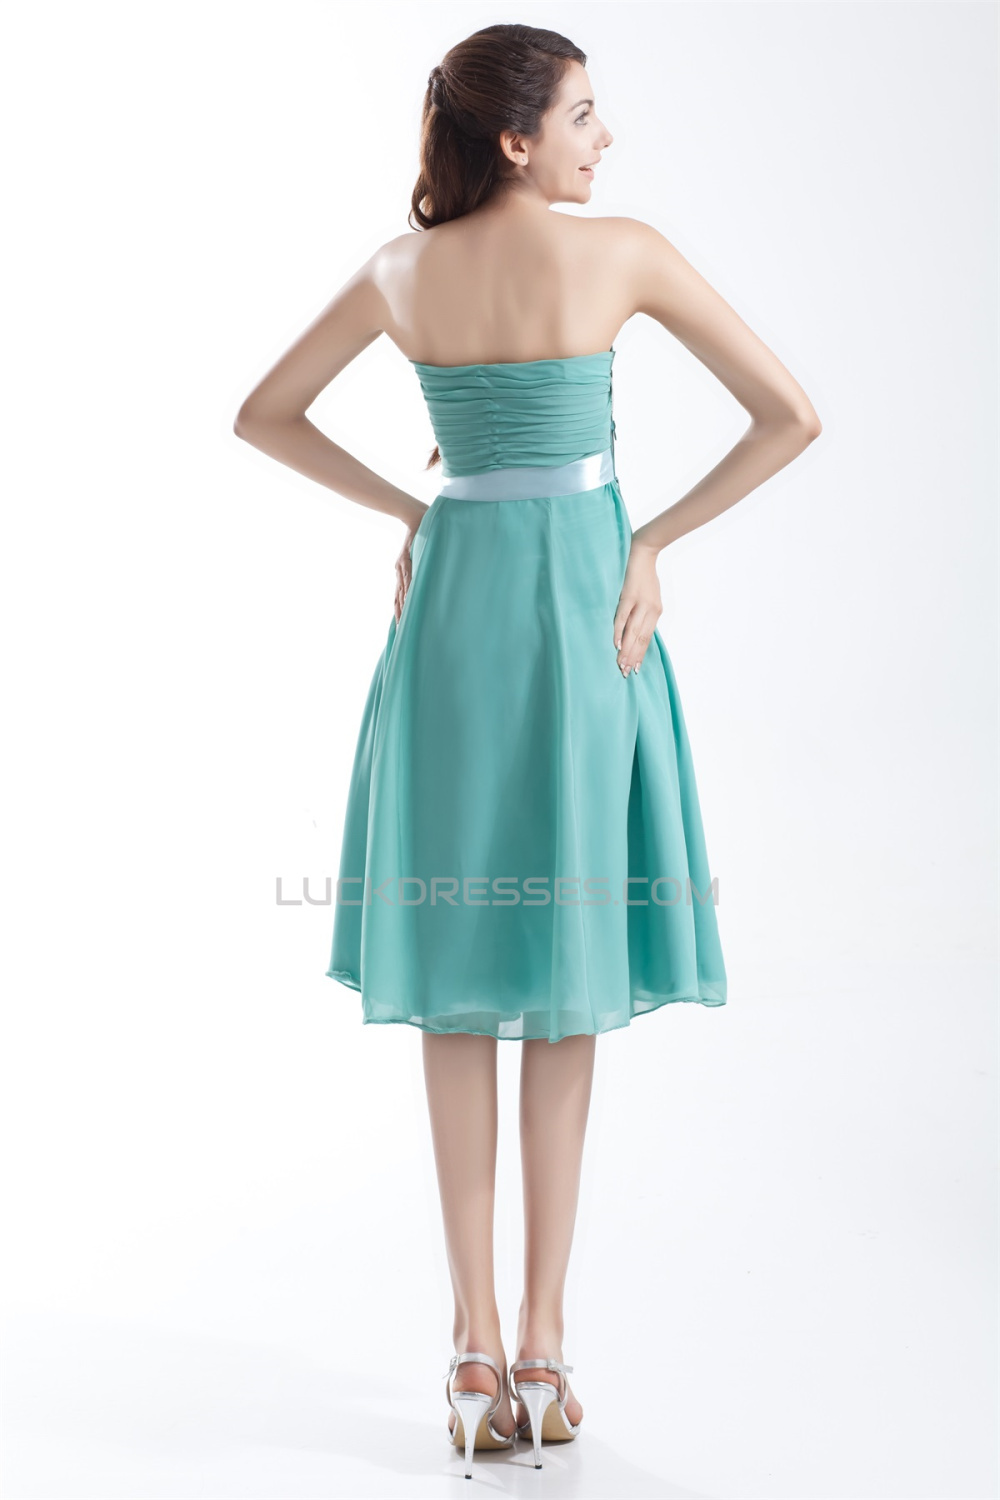 sleeveless wedding dresses knee length strapless sleeveless chiffon bridesmaid 7546